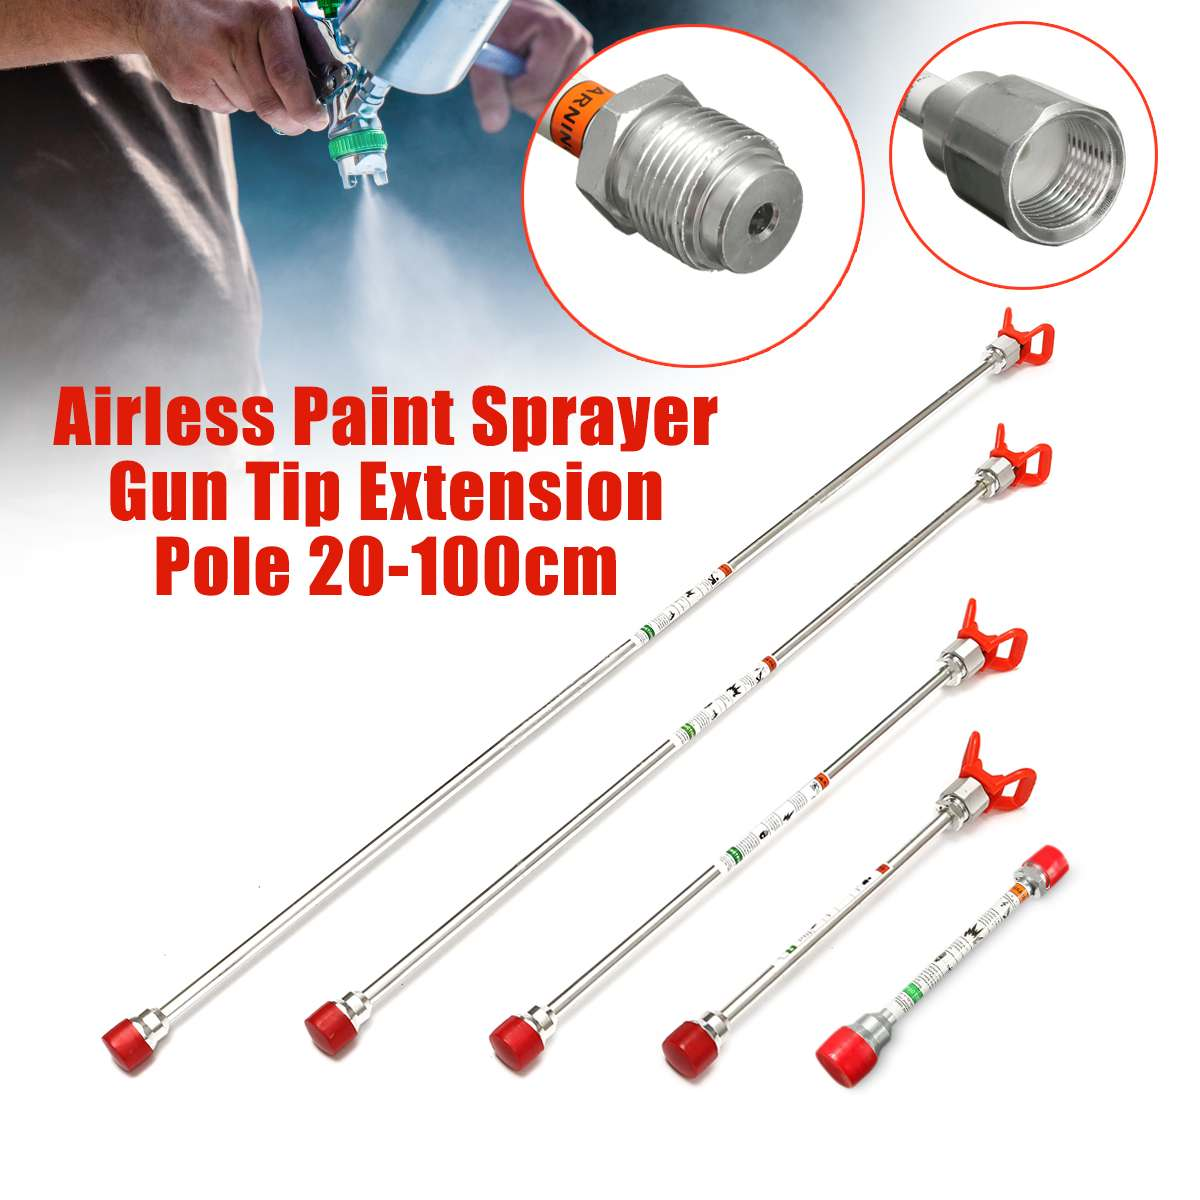 Airless Paint Spray Guns Extension Pole With Spray Guns Nozzle Seat 20/30/50/75/100cm